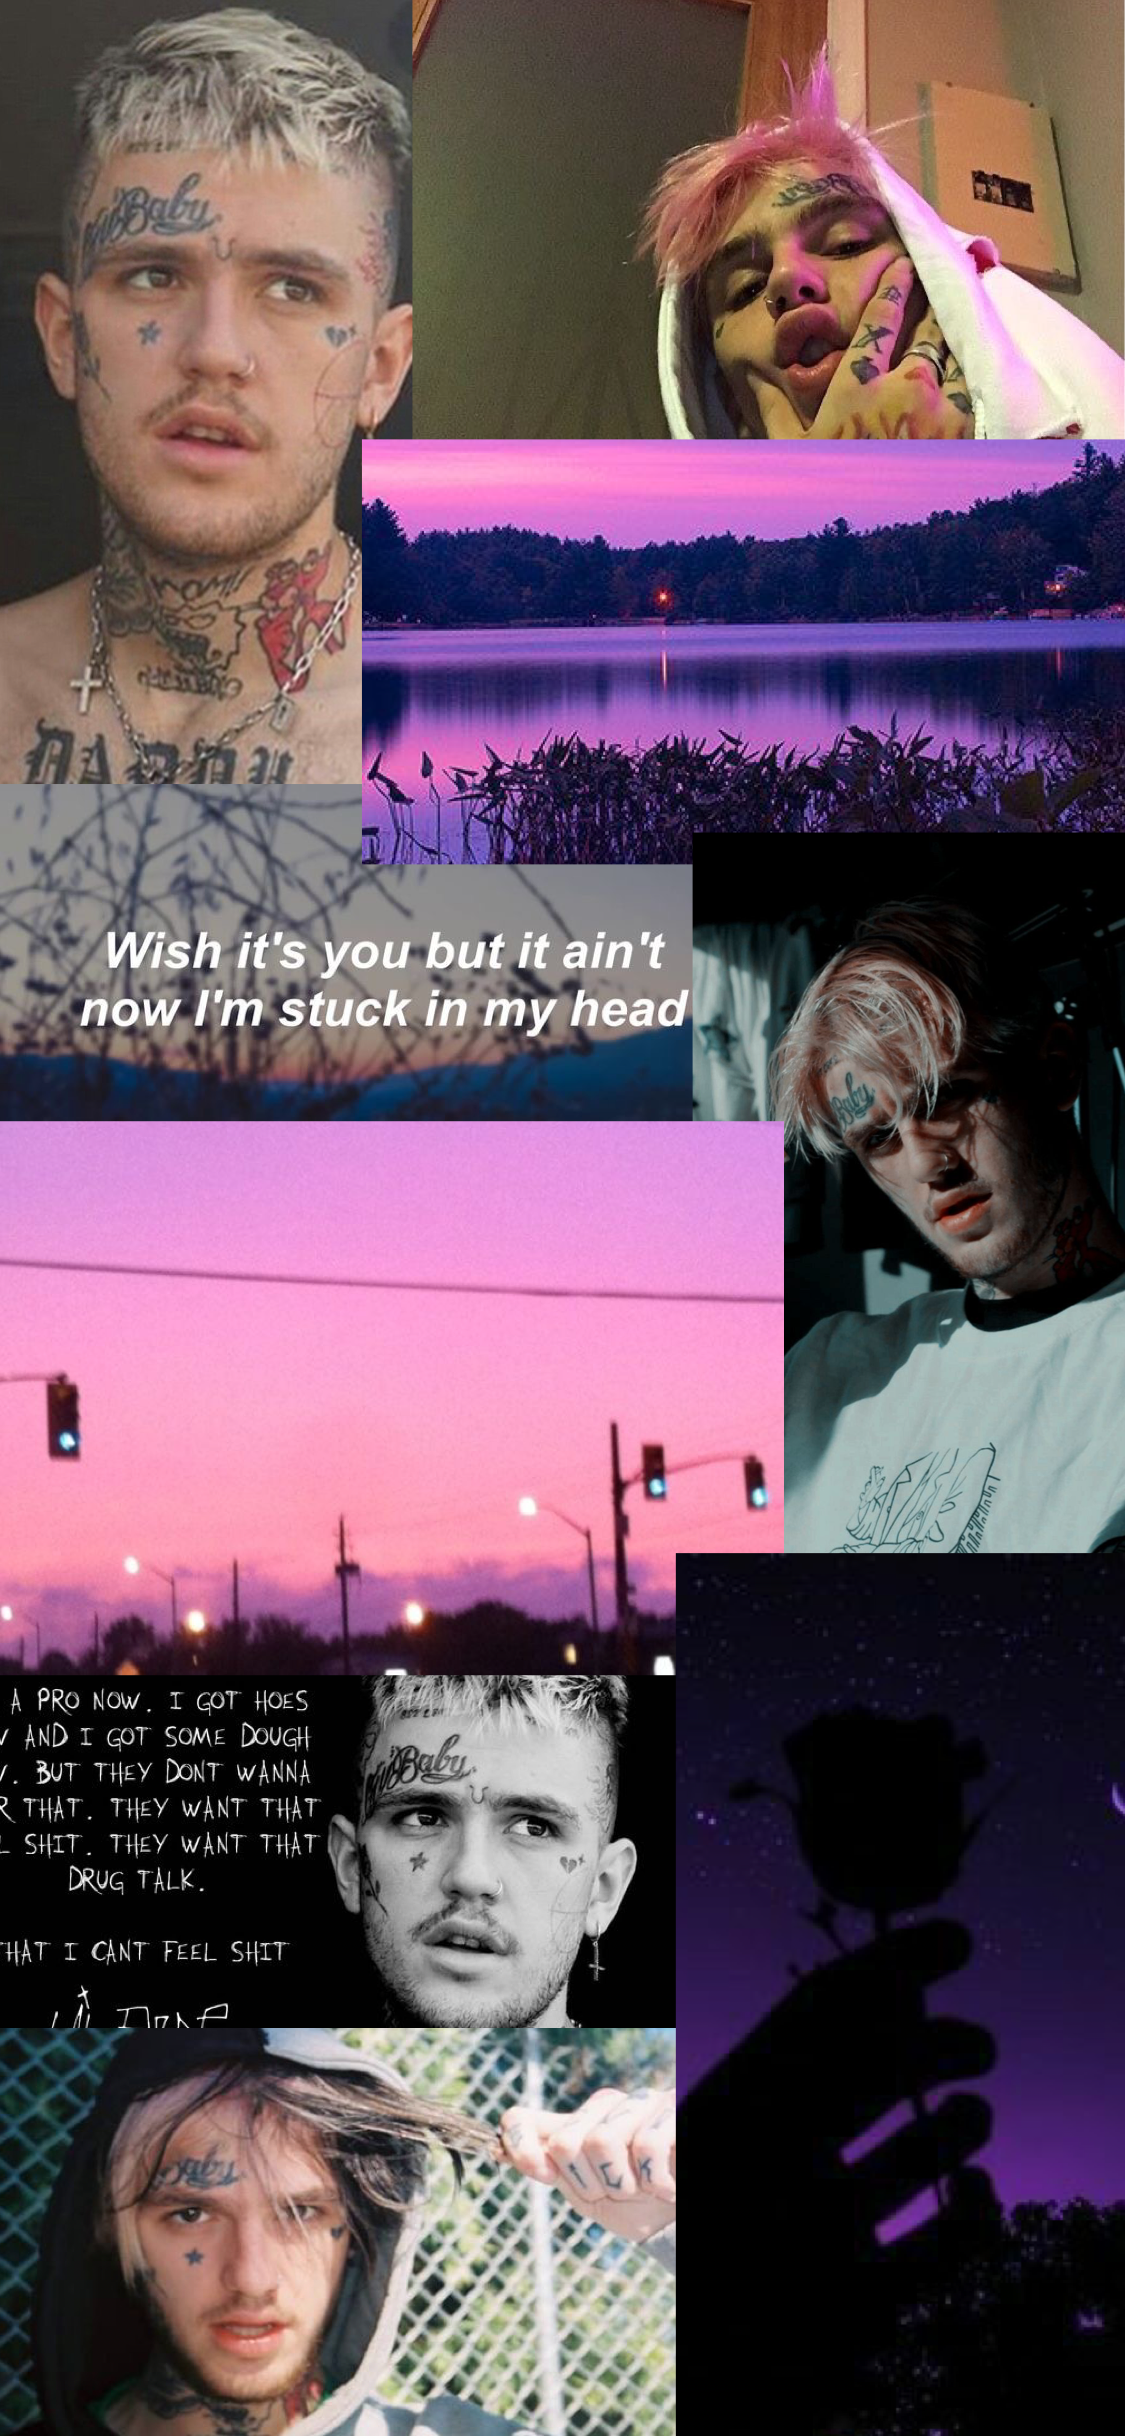 Lil Peep Iphone 11 Pro Wallpaper Lil Peep Beamerboy Lil Peep Hellboy My Chemical Romance Wallpaper